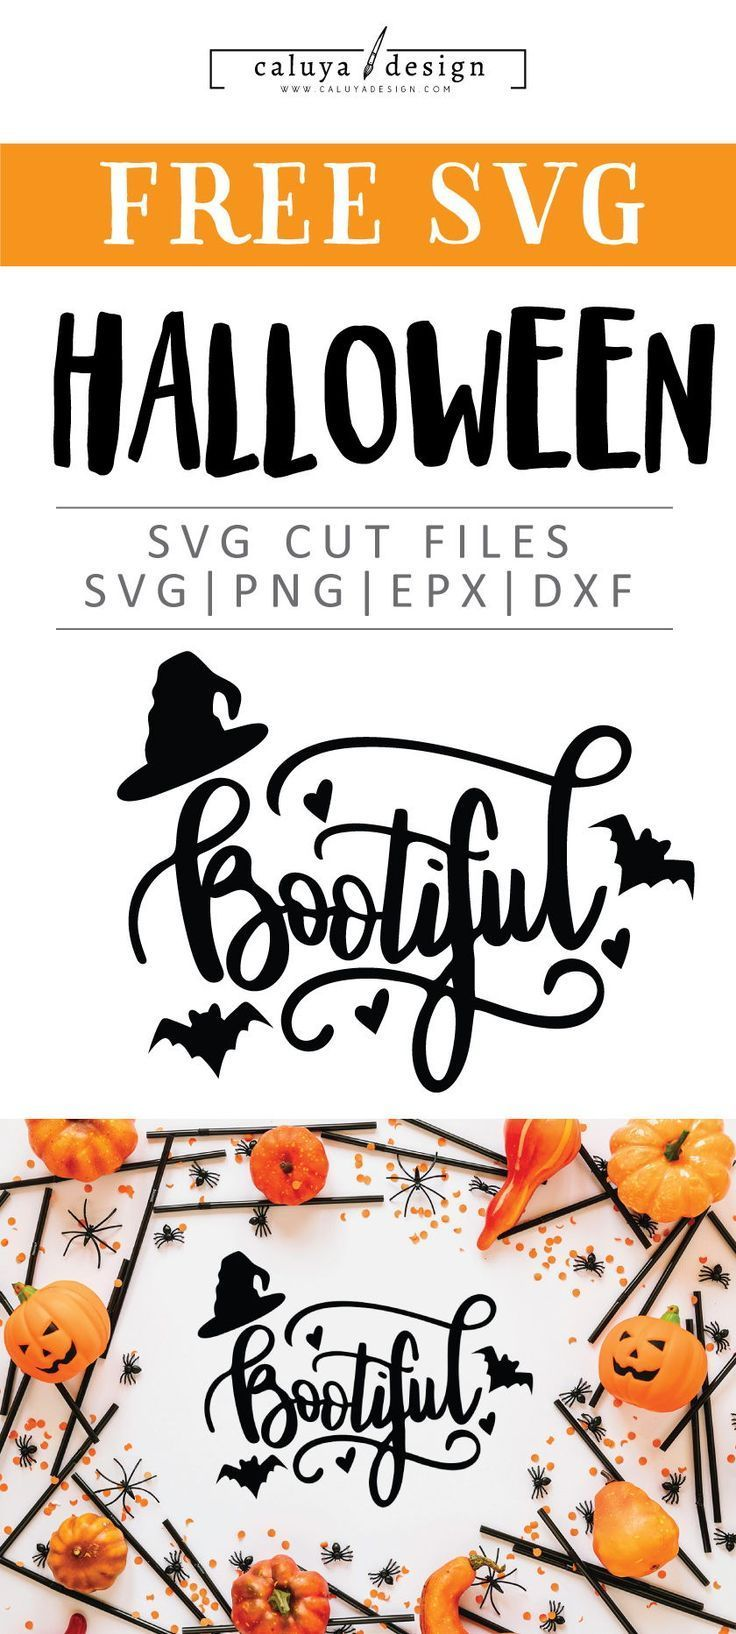 Free Bootiful Svg Png Eps Dxf By Caluya Design Halloween Clipart Free Cricut Halloween Cricut Projects Vinyl